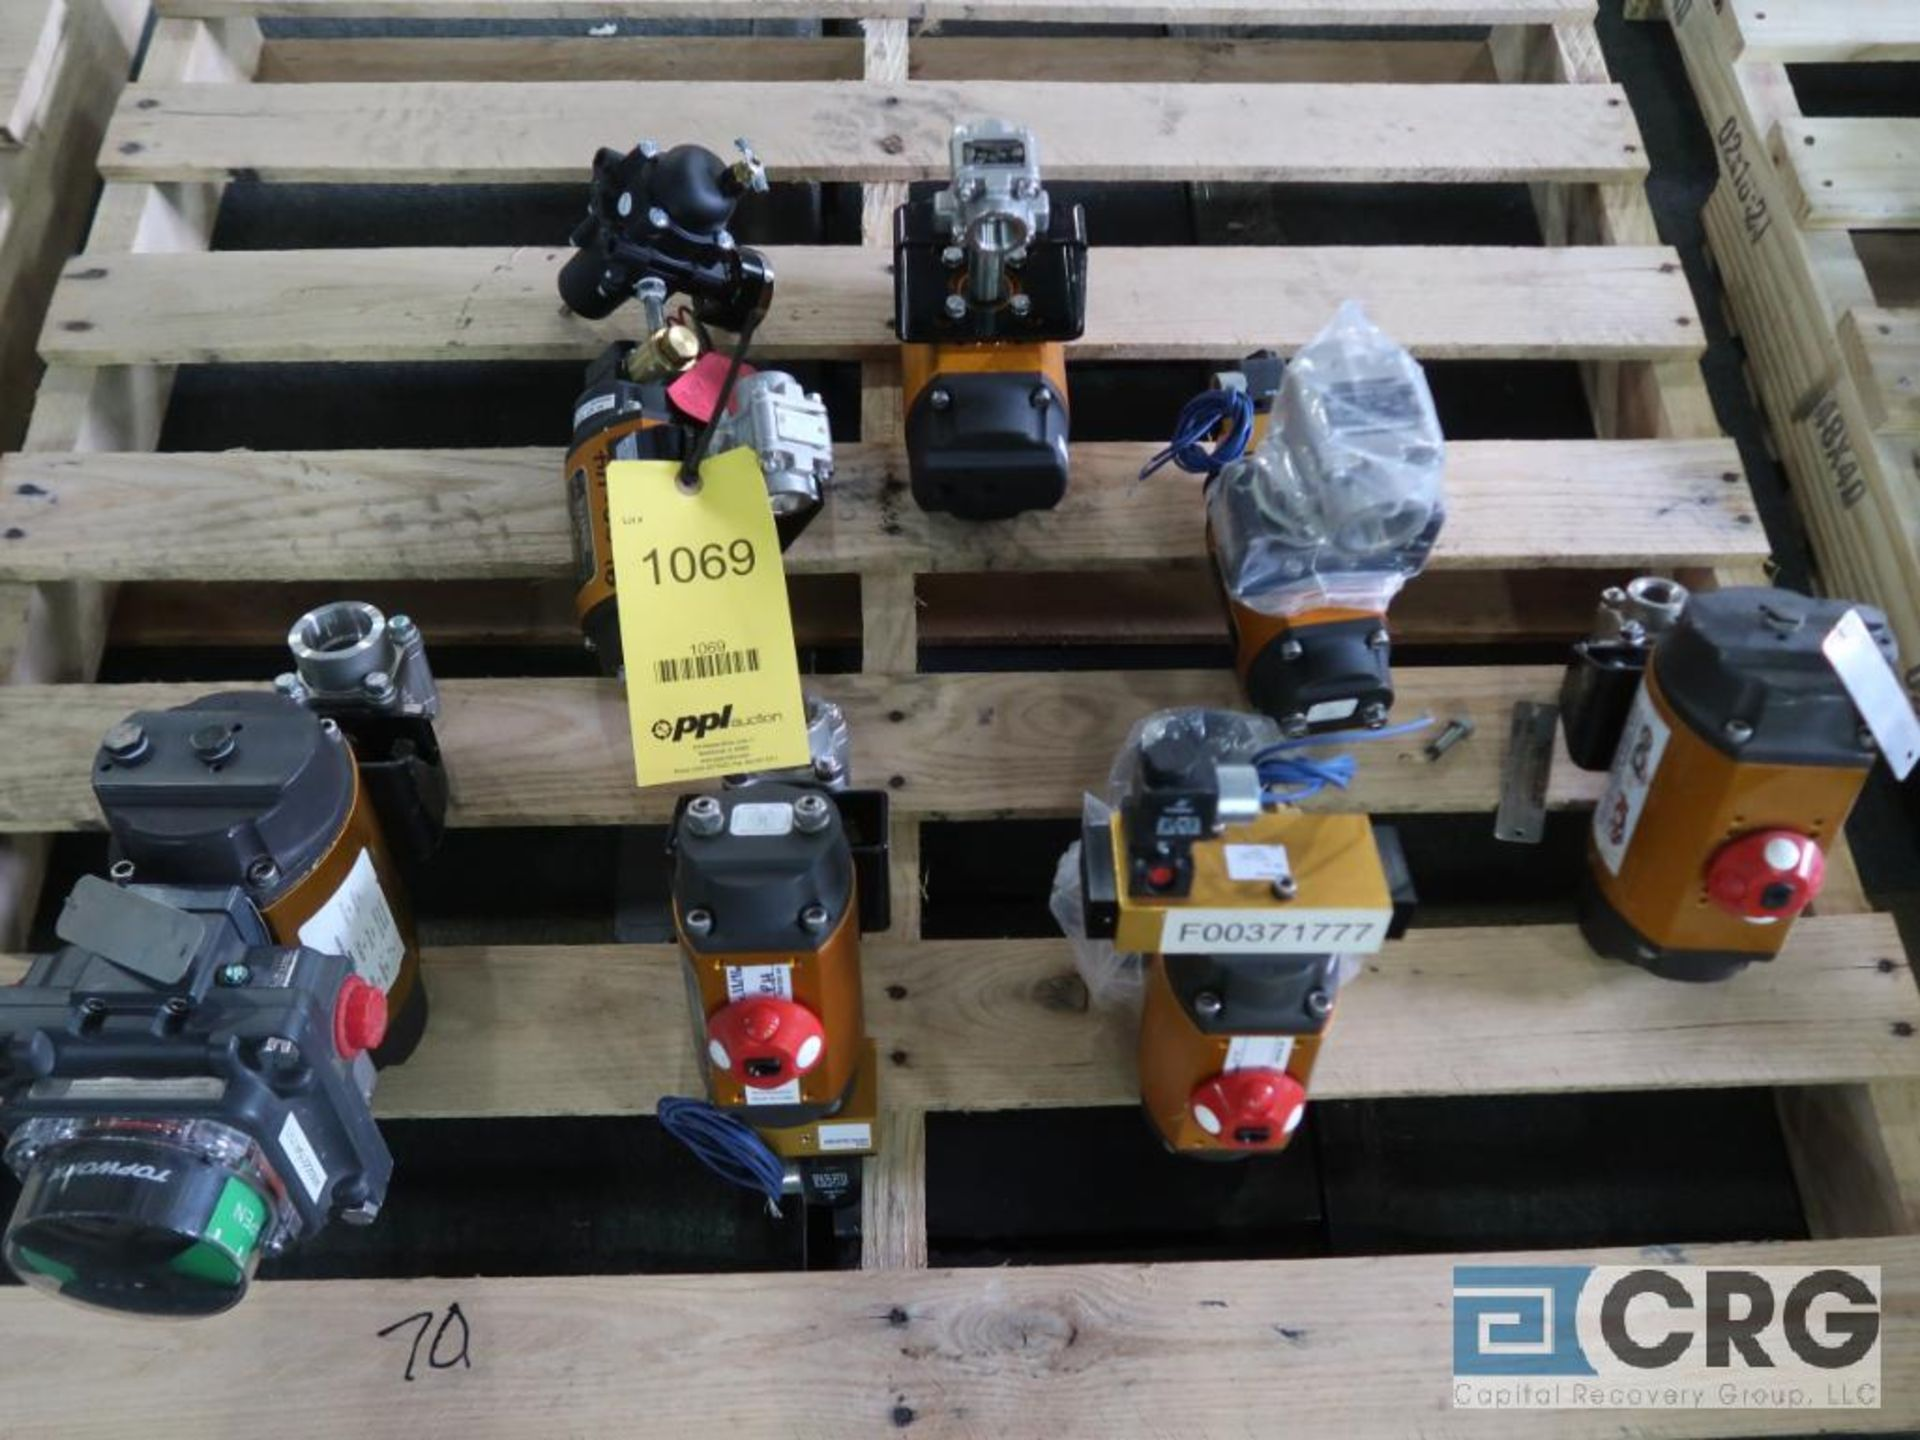 Lot of (7) Worchester stainless actuator valves, (3) 1 in., and (4) 1 1/2 in. (Finish Building)